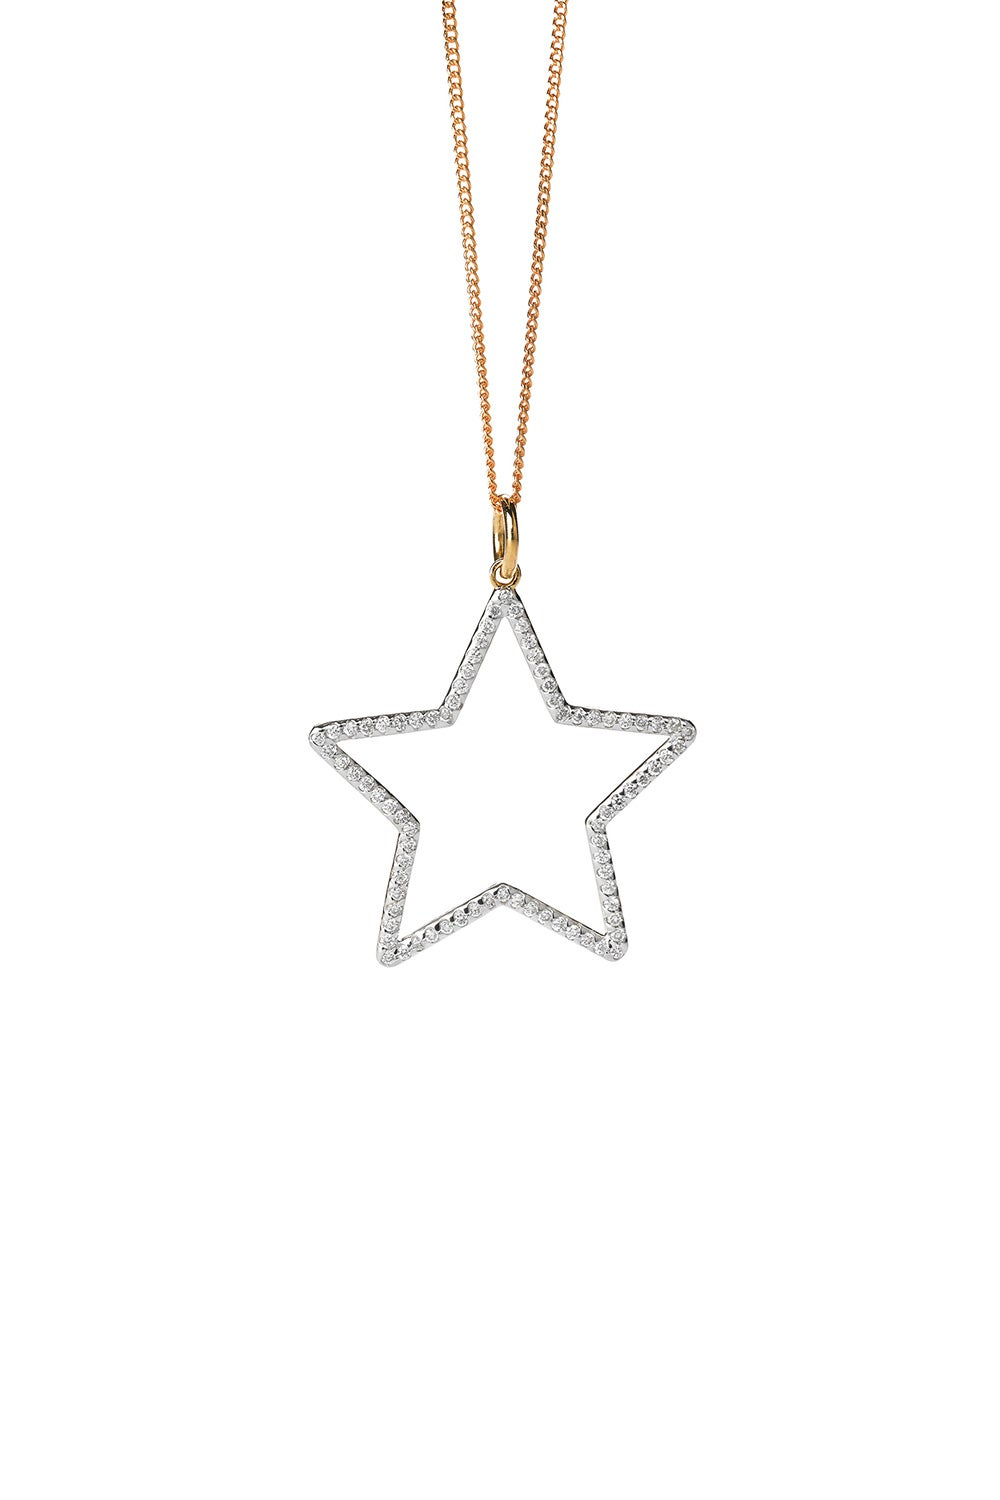 Diamond Star Necklace, Gold, .44ct Diamond